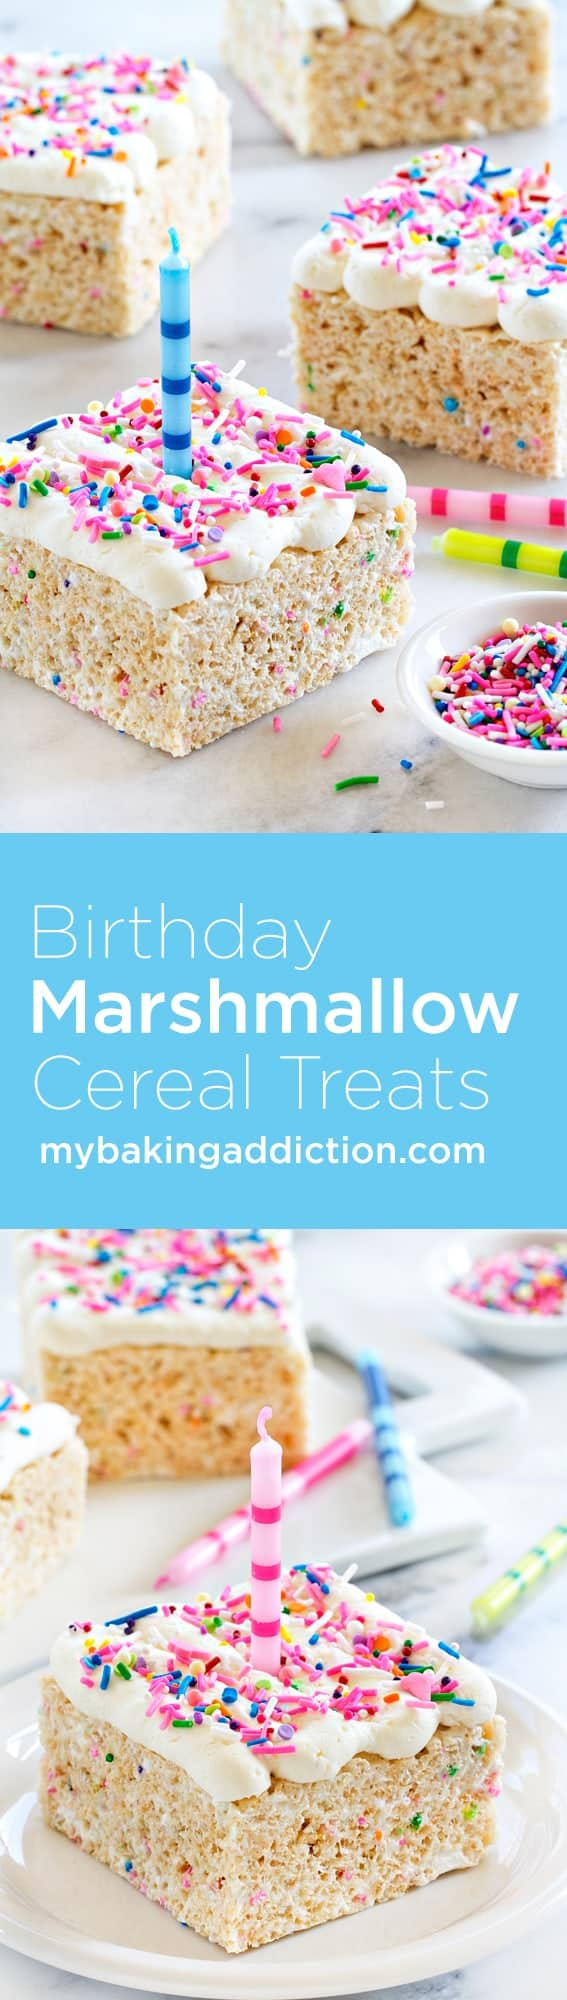 Birthday Marshmallow Cereal Treats are topped with buttercream frosting and loaded with sprinkles. So perfect for any celebration!